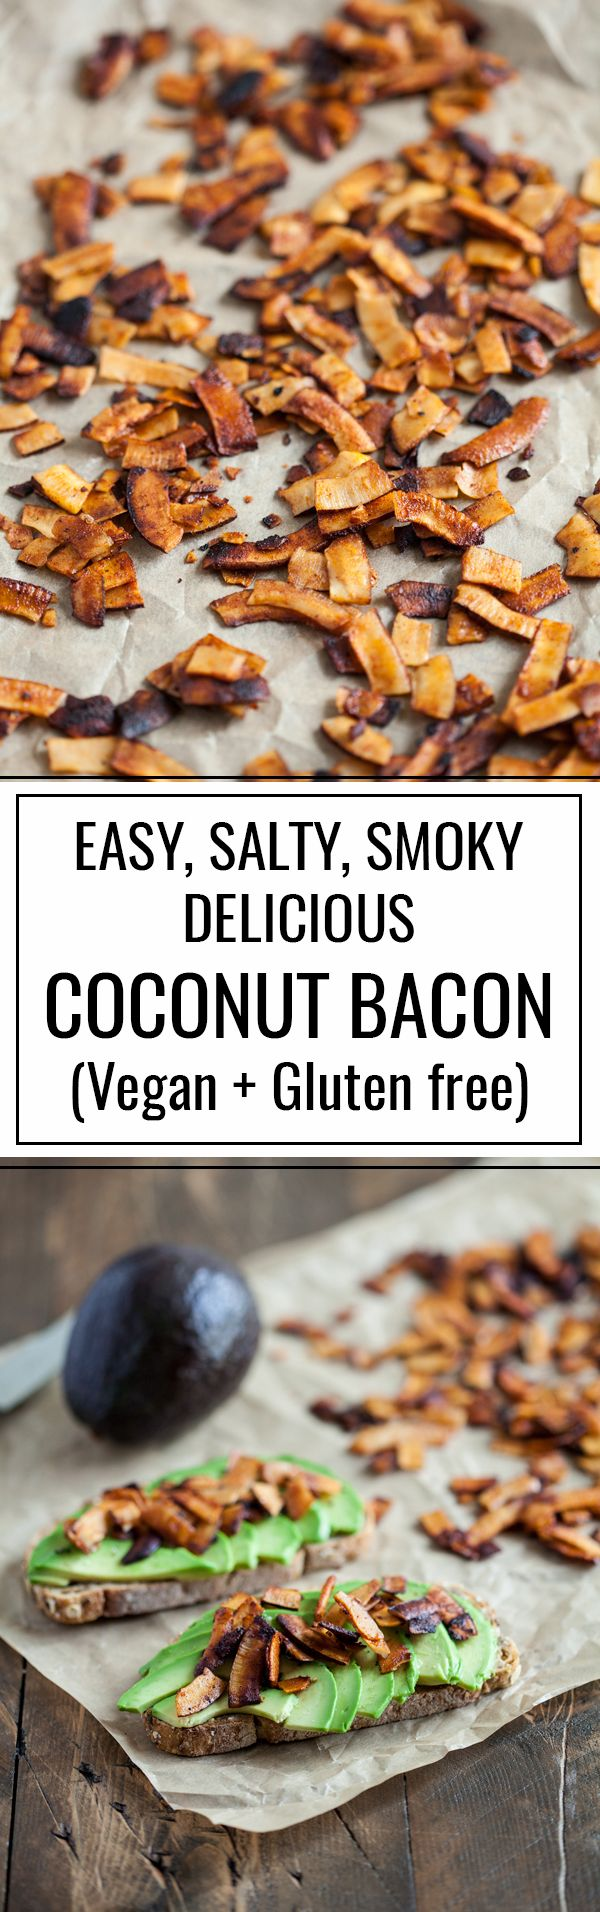 Easy, delicious vegan and gluten free coconut bacon: the perfect topping for soups, stews, toast, potatoes, and more! | The Full Helping